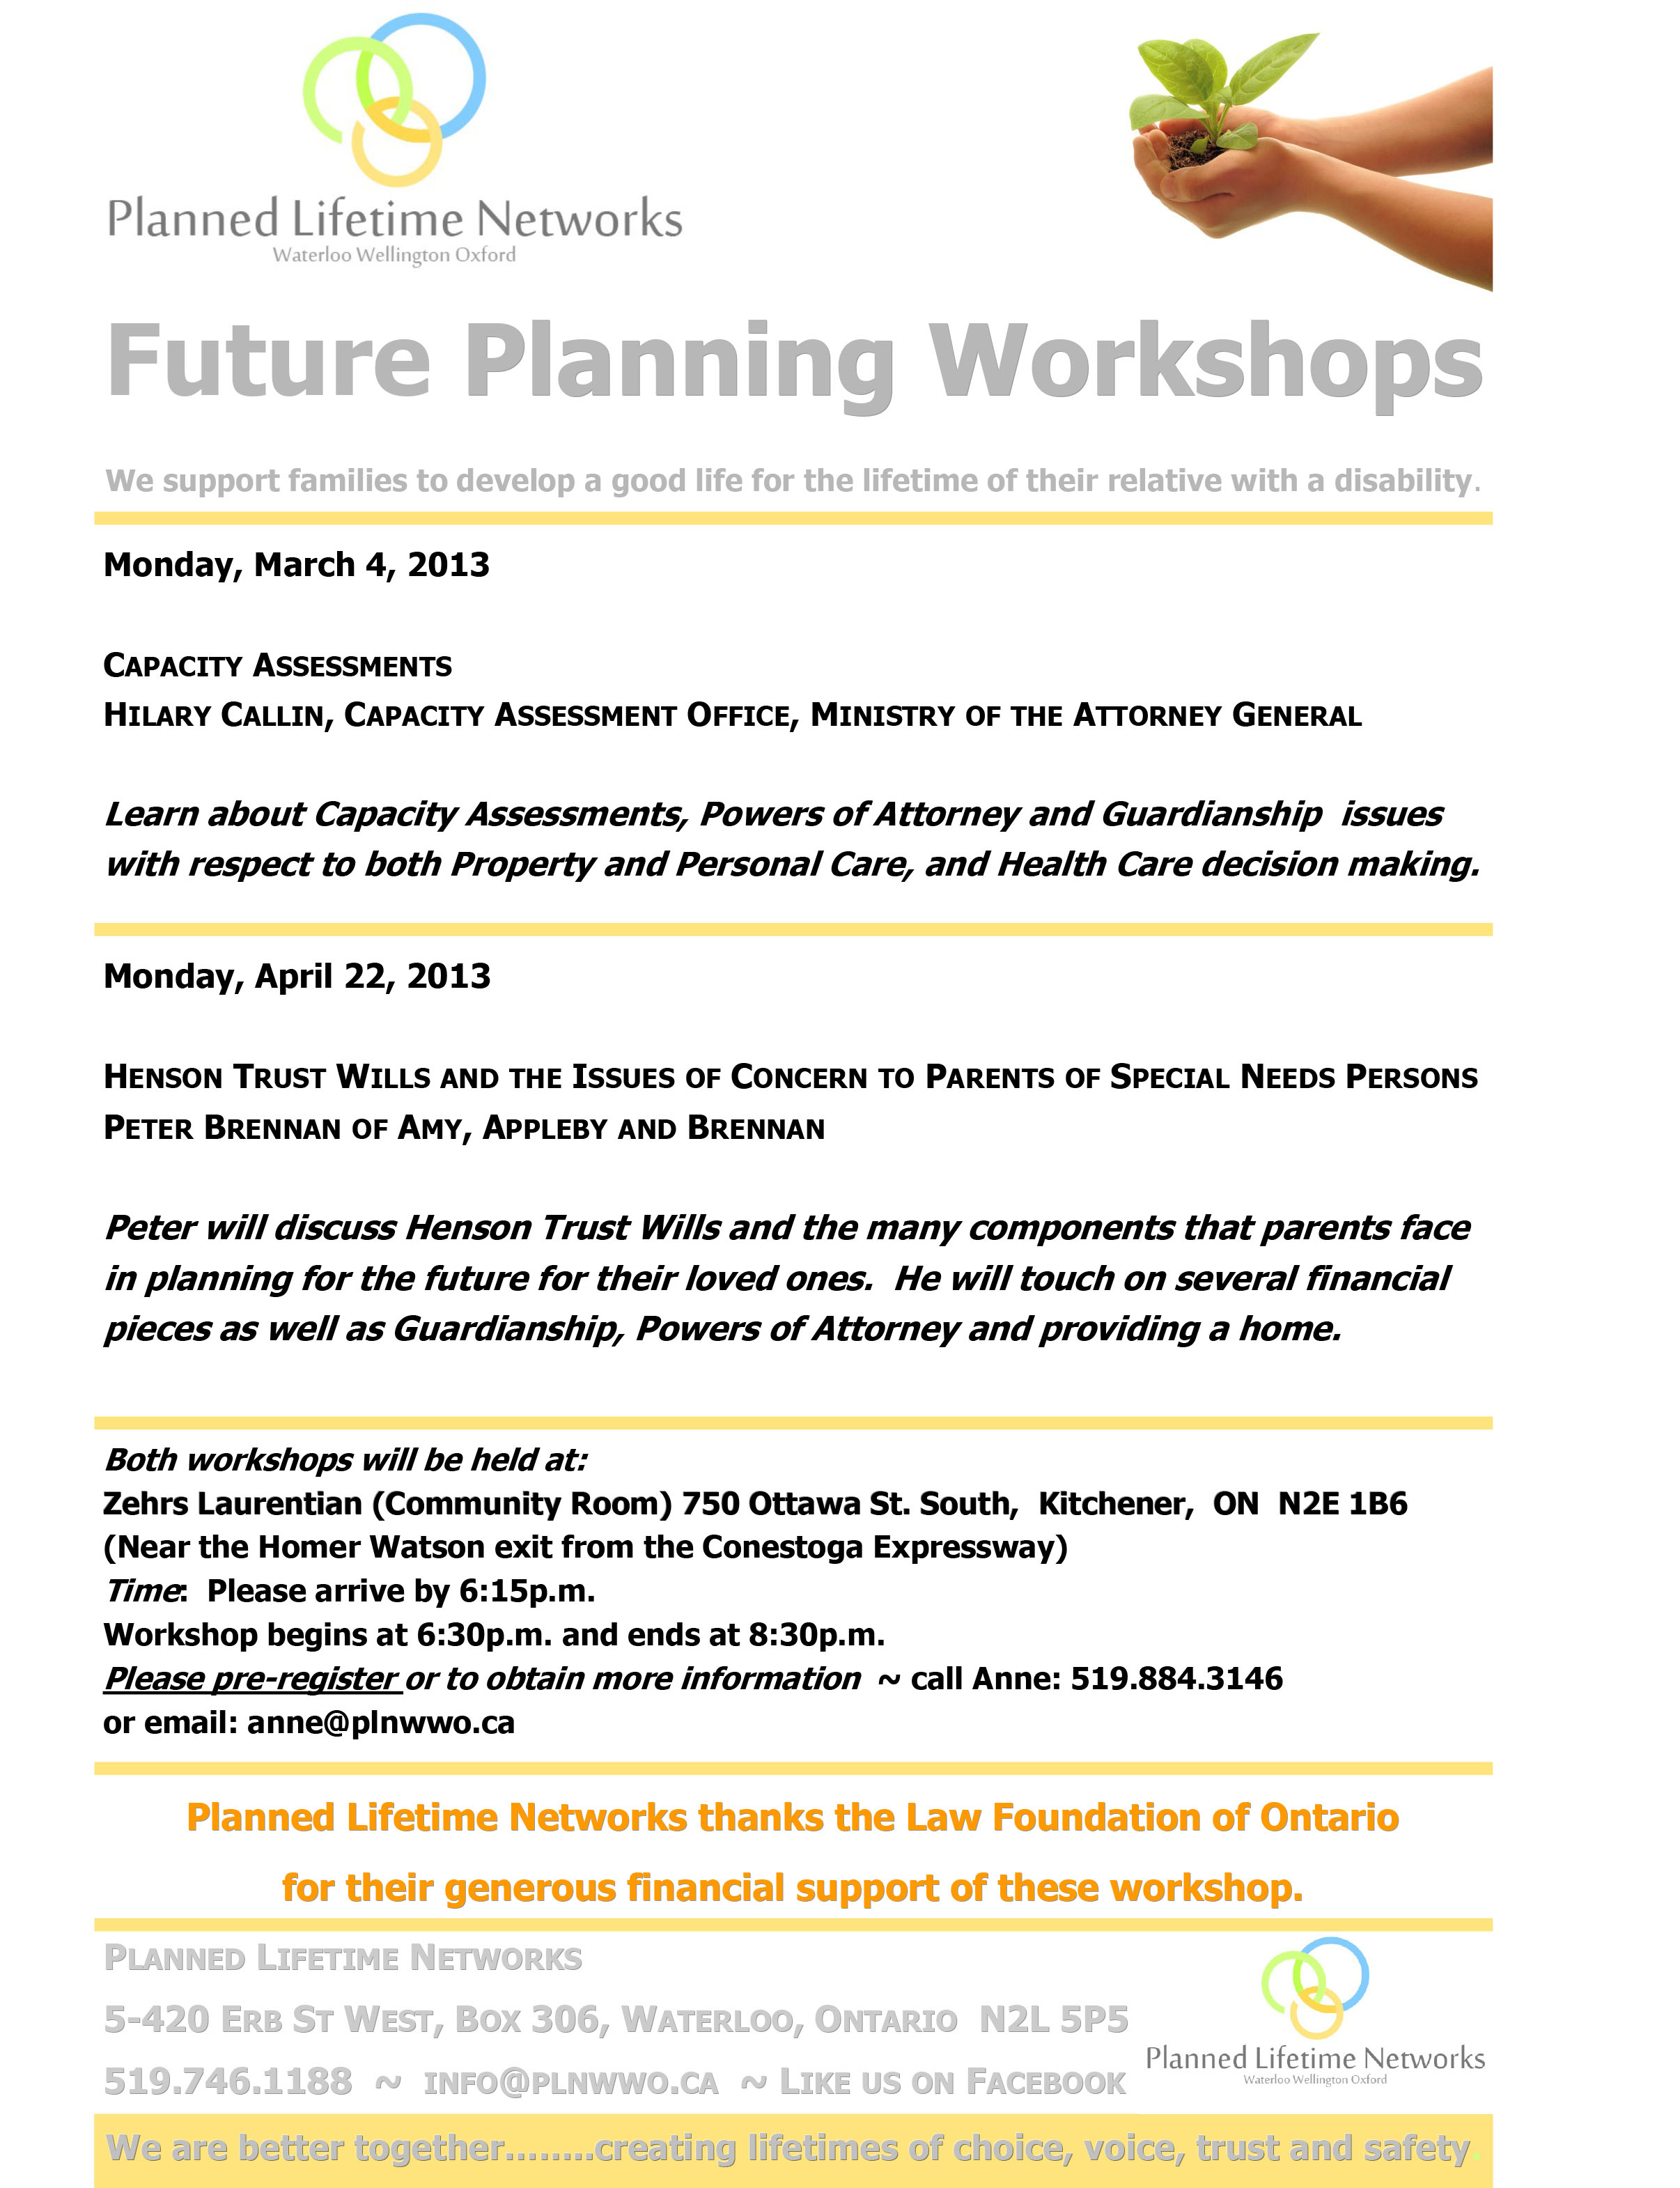 Planned Lifetime Networks flyer - The Law Foundation of Ontario